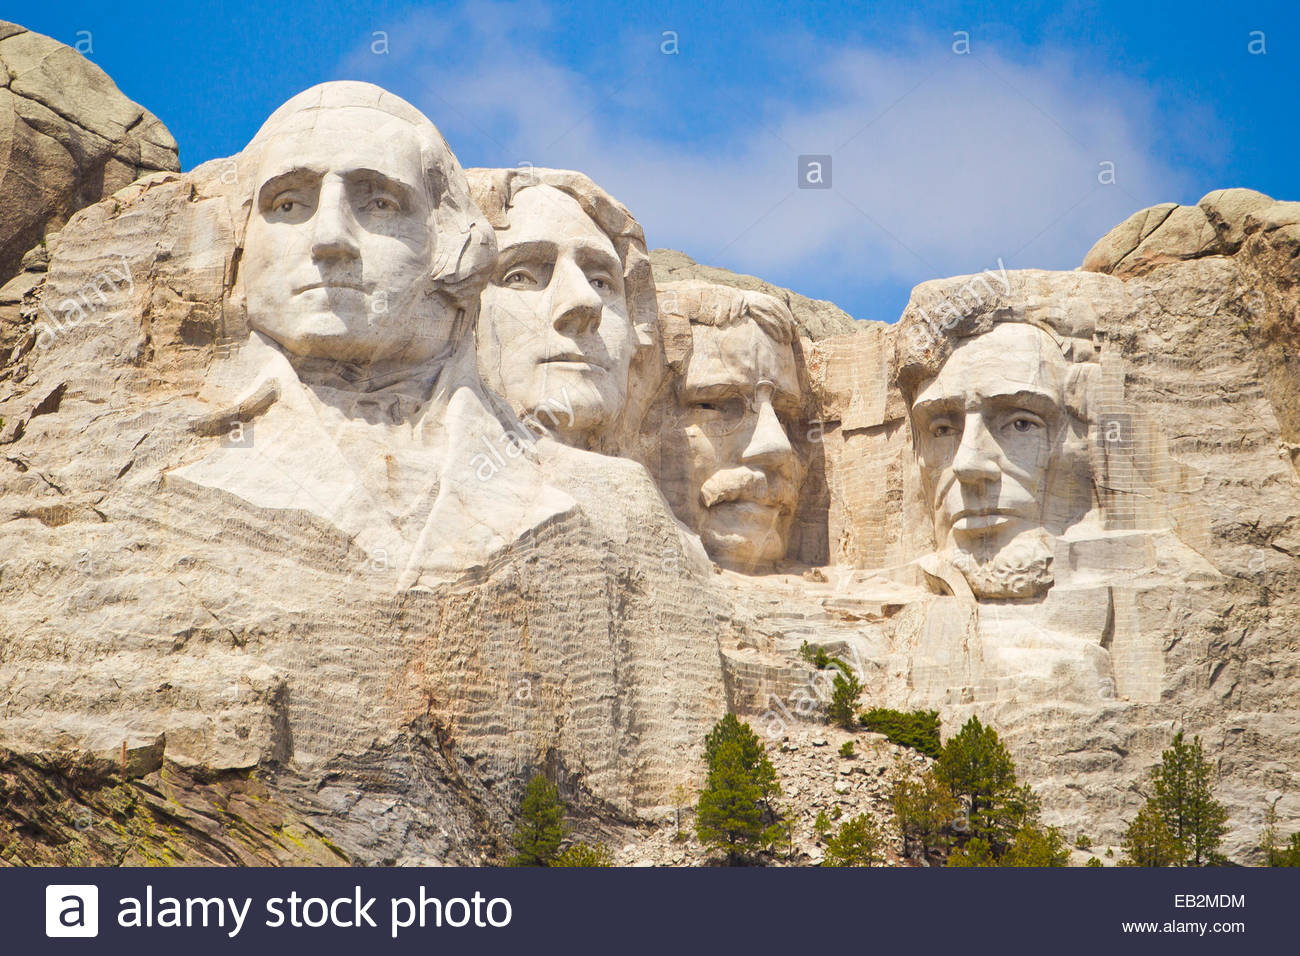 Low angle view of la images sculptées de présidents américains Washington, Jefferson, Theodore Roosevelt, Photo Stock